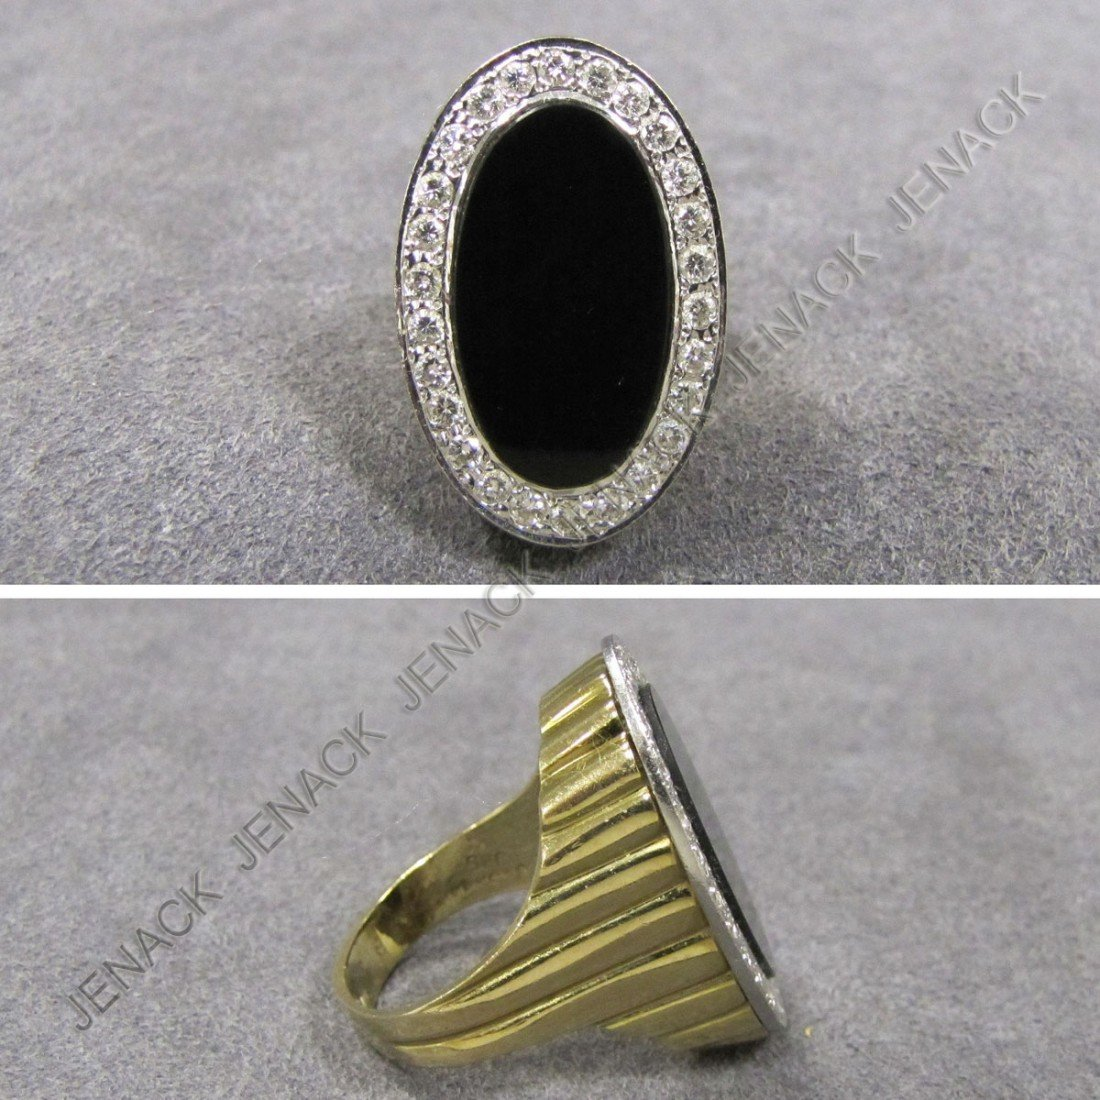 16: 14K ONYX AND DIAMOND OVAL RING